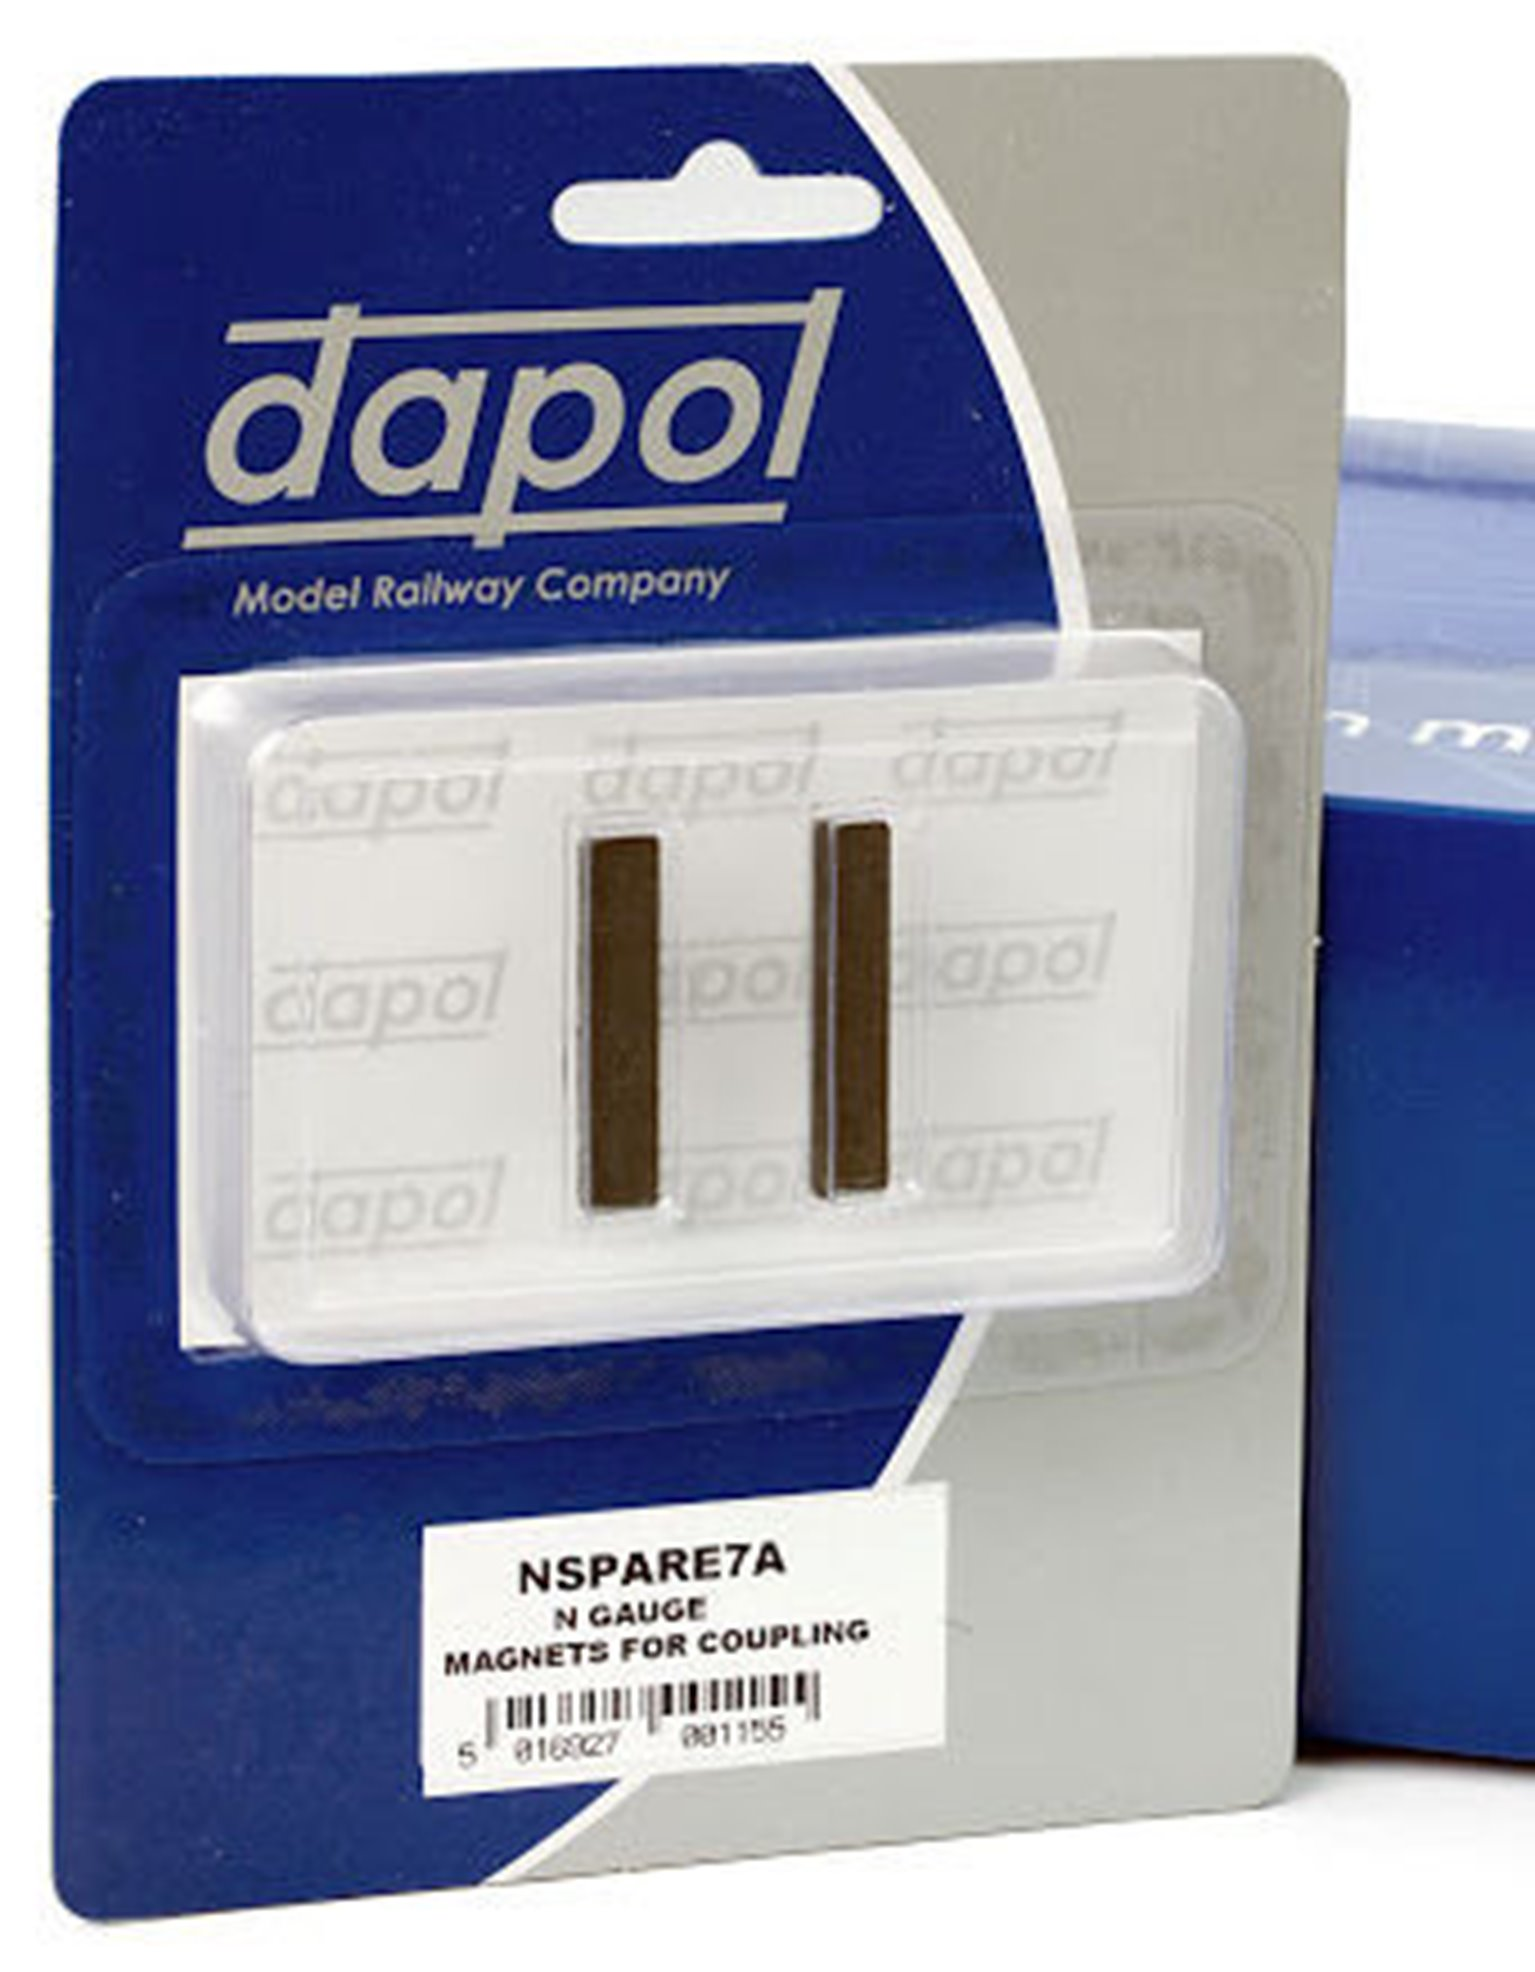 In track magnets for Dapol Easi-couple magnetic NEM couplers (1 pair)